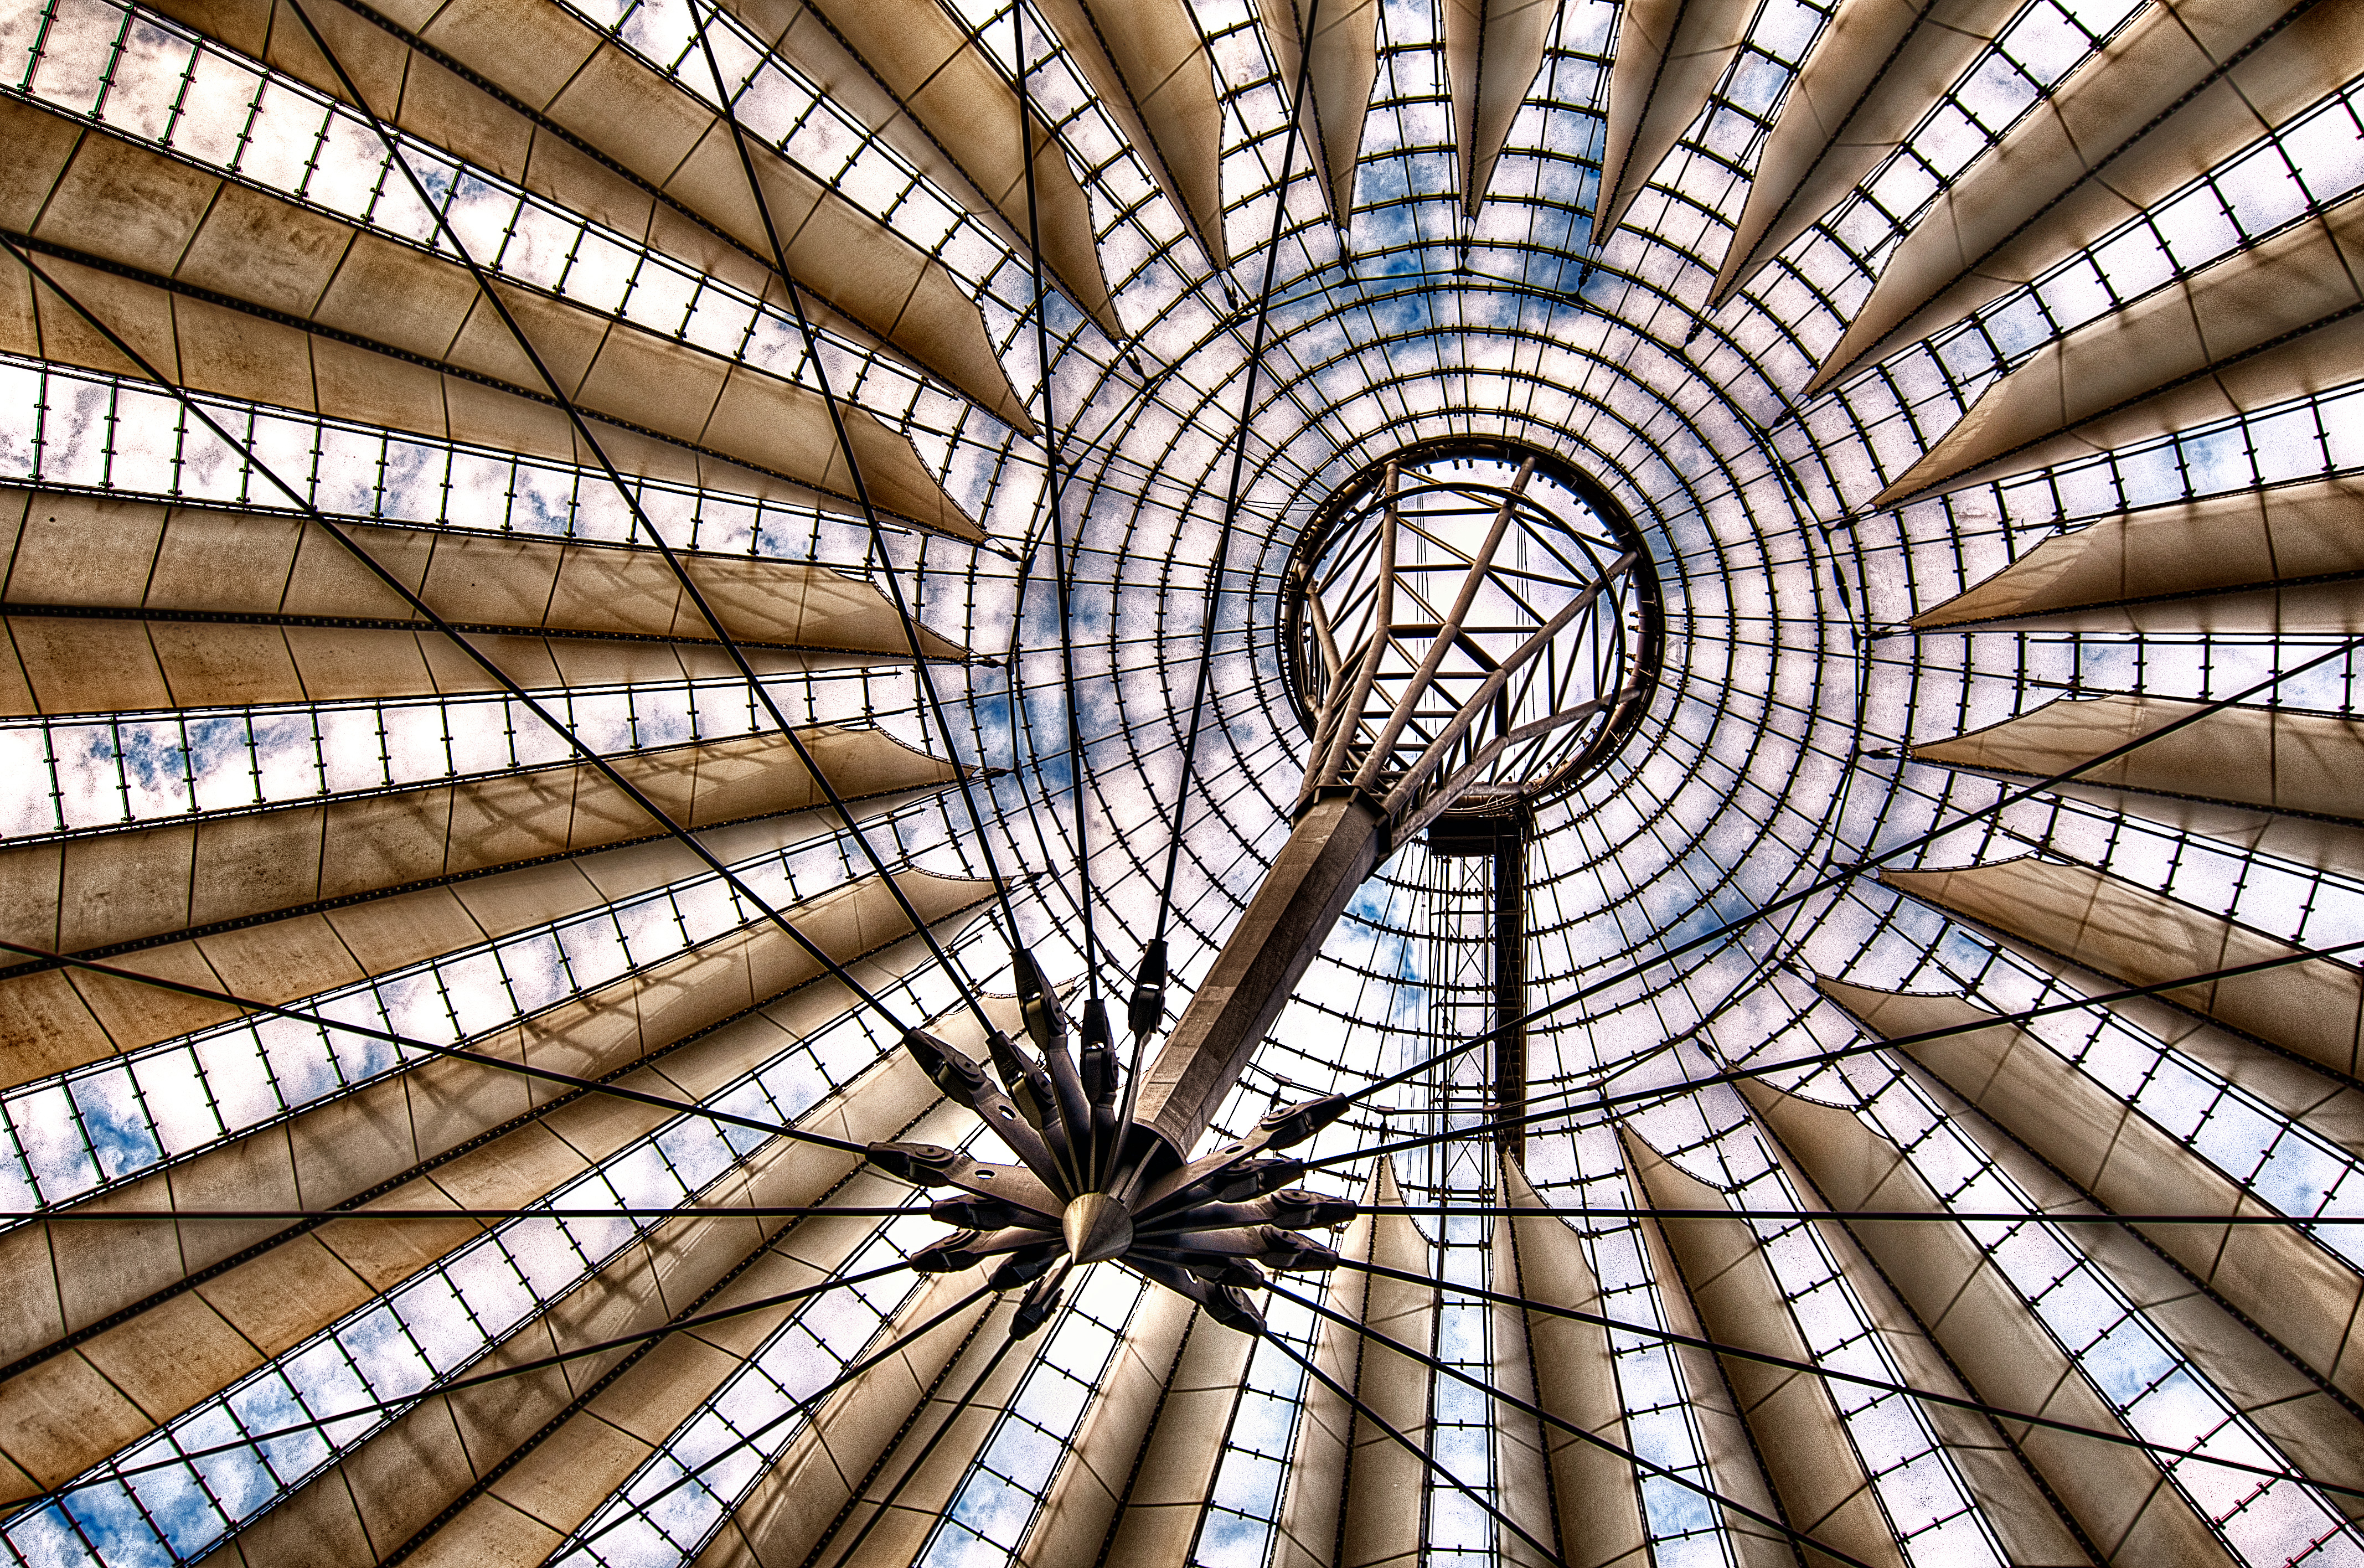 Setting Sails In Berlin - Potsdamer Platz by Sprengben [why not get a friend], on Flickr